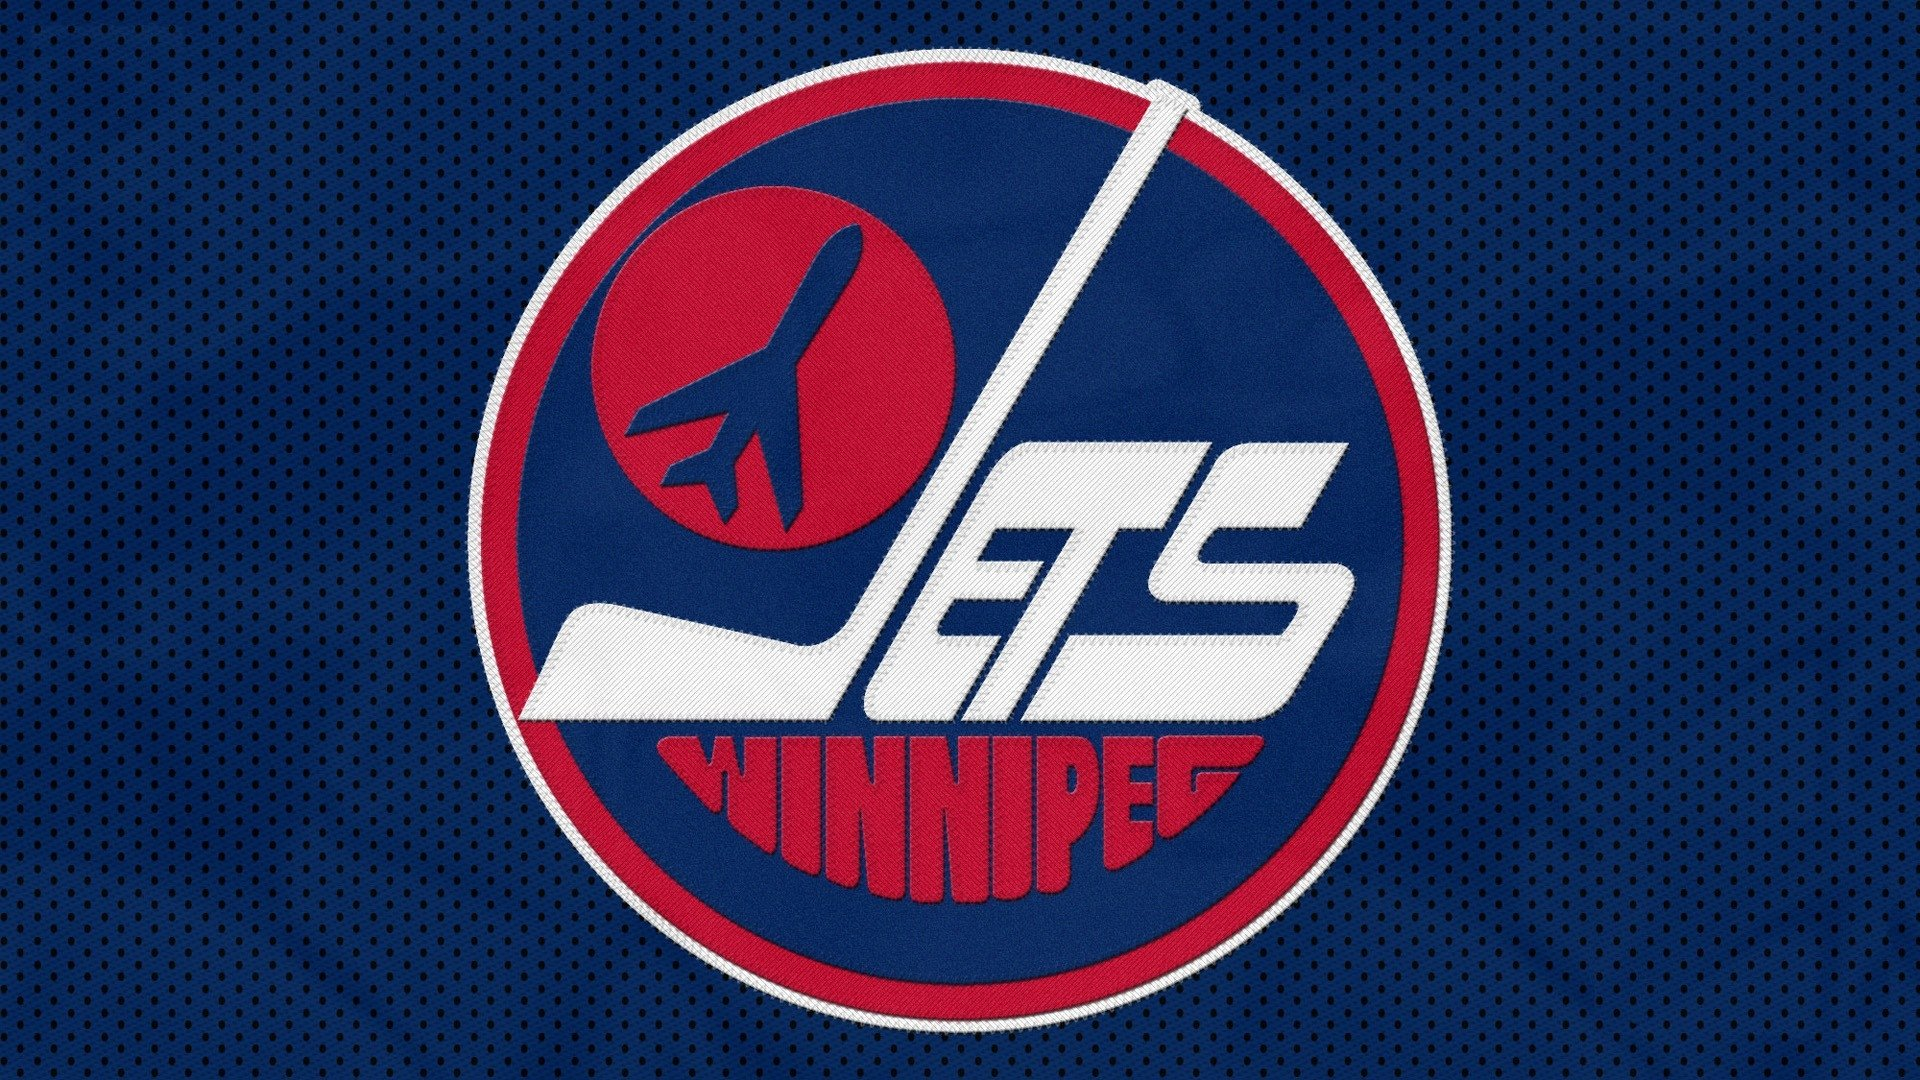 Winnipeg Jets HD Wallpaper Background Image 1920x1080 ID 1920x1080